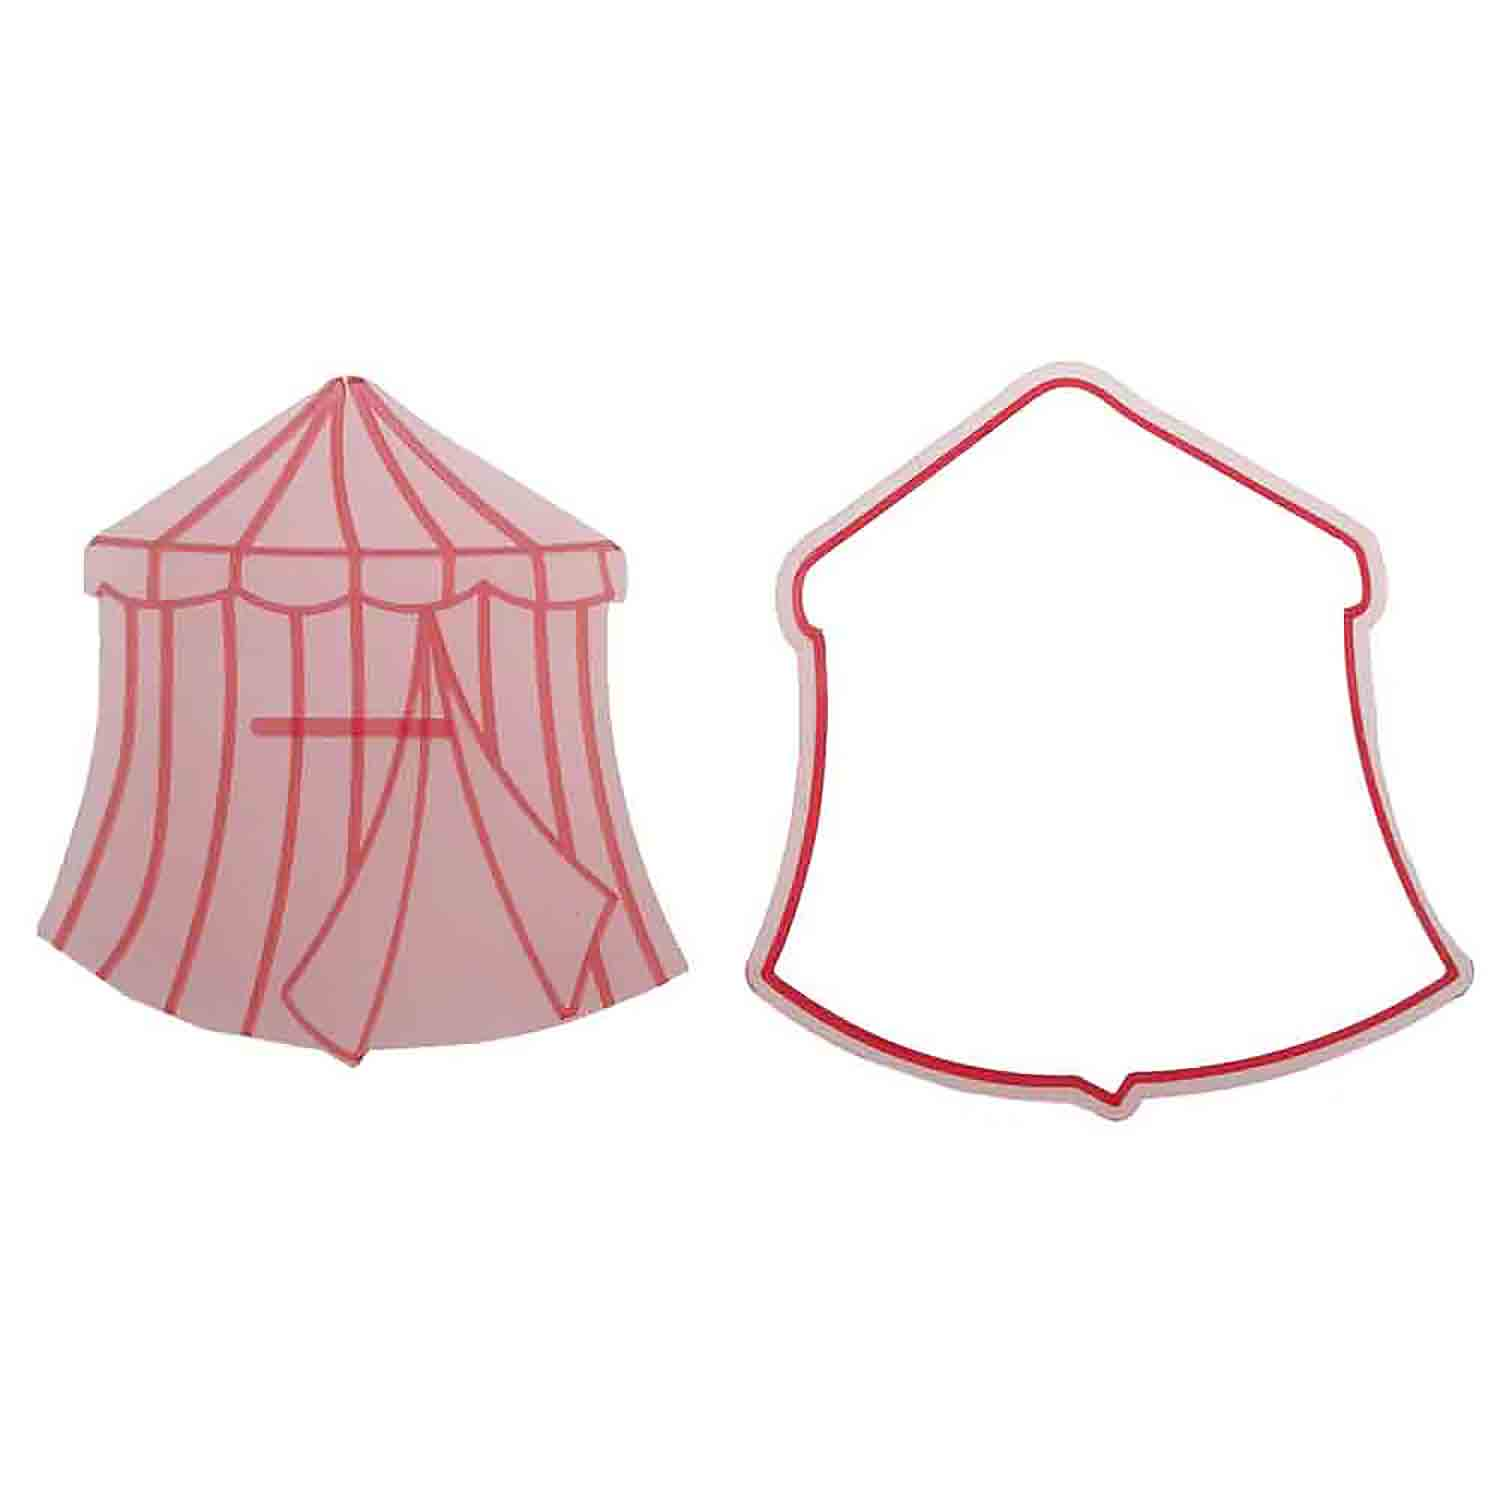 Circus Tent Cutter and Embosser Set by Cakegirls